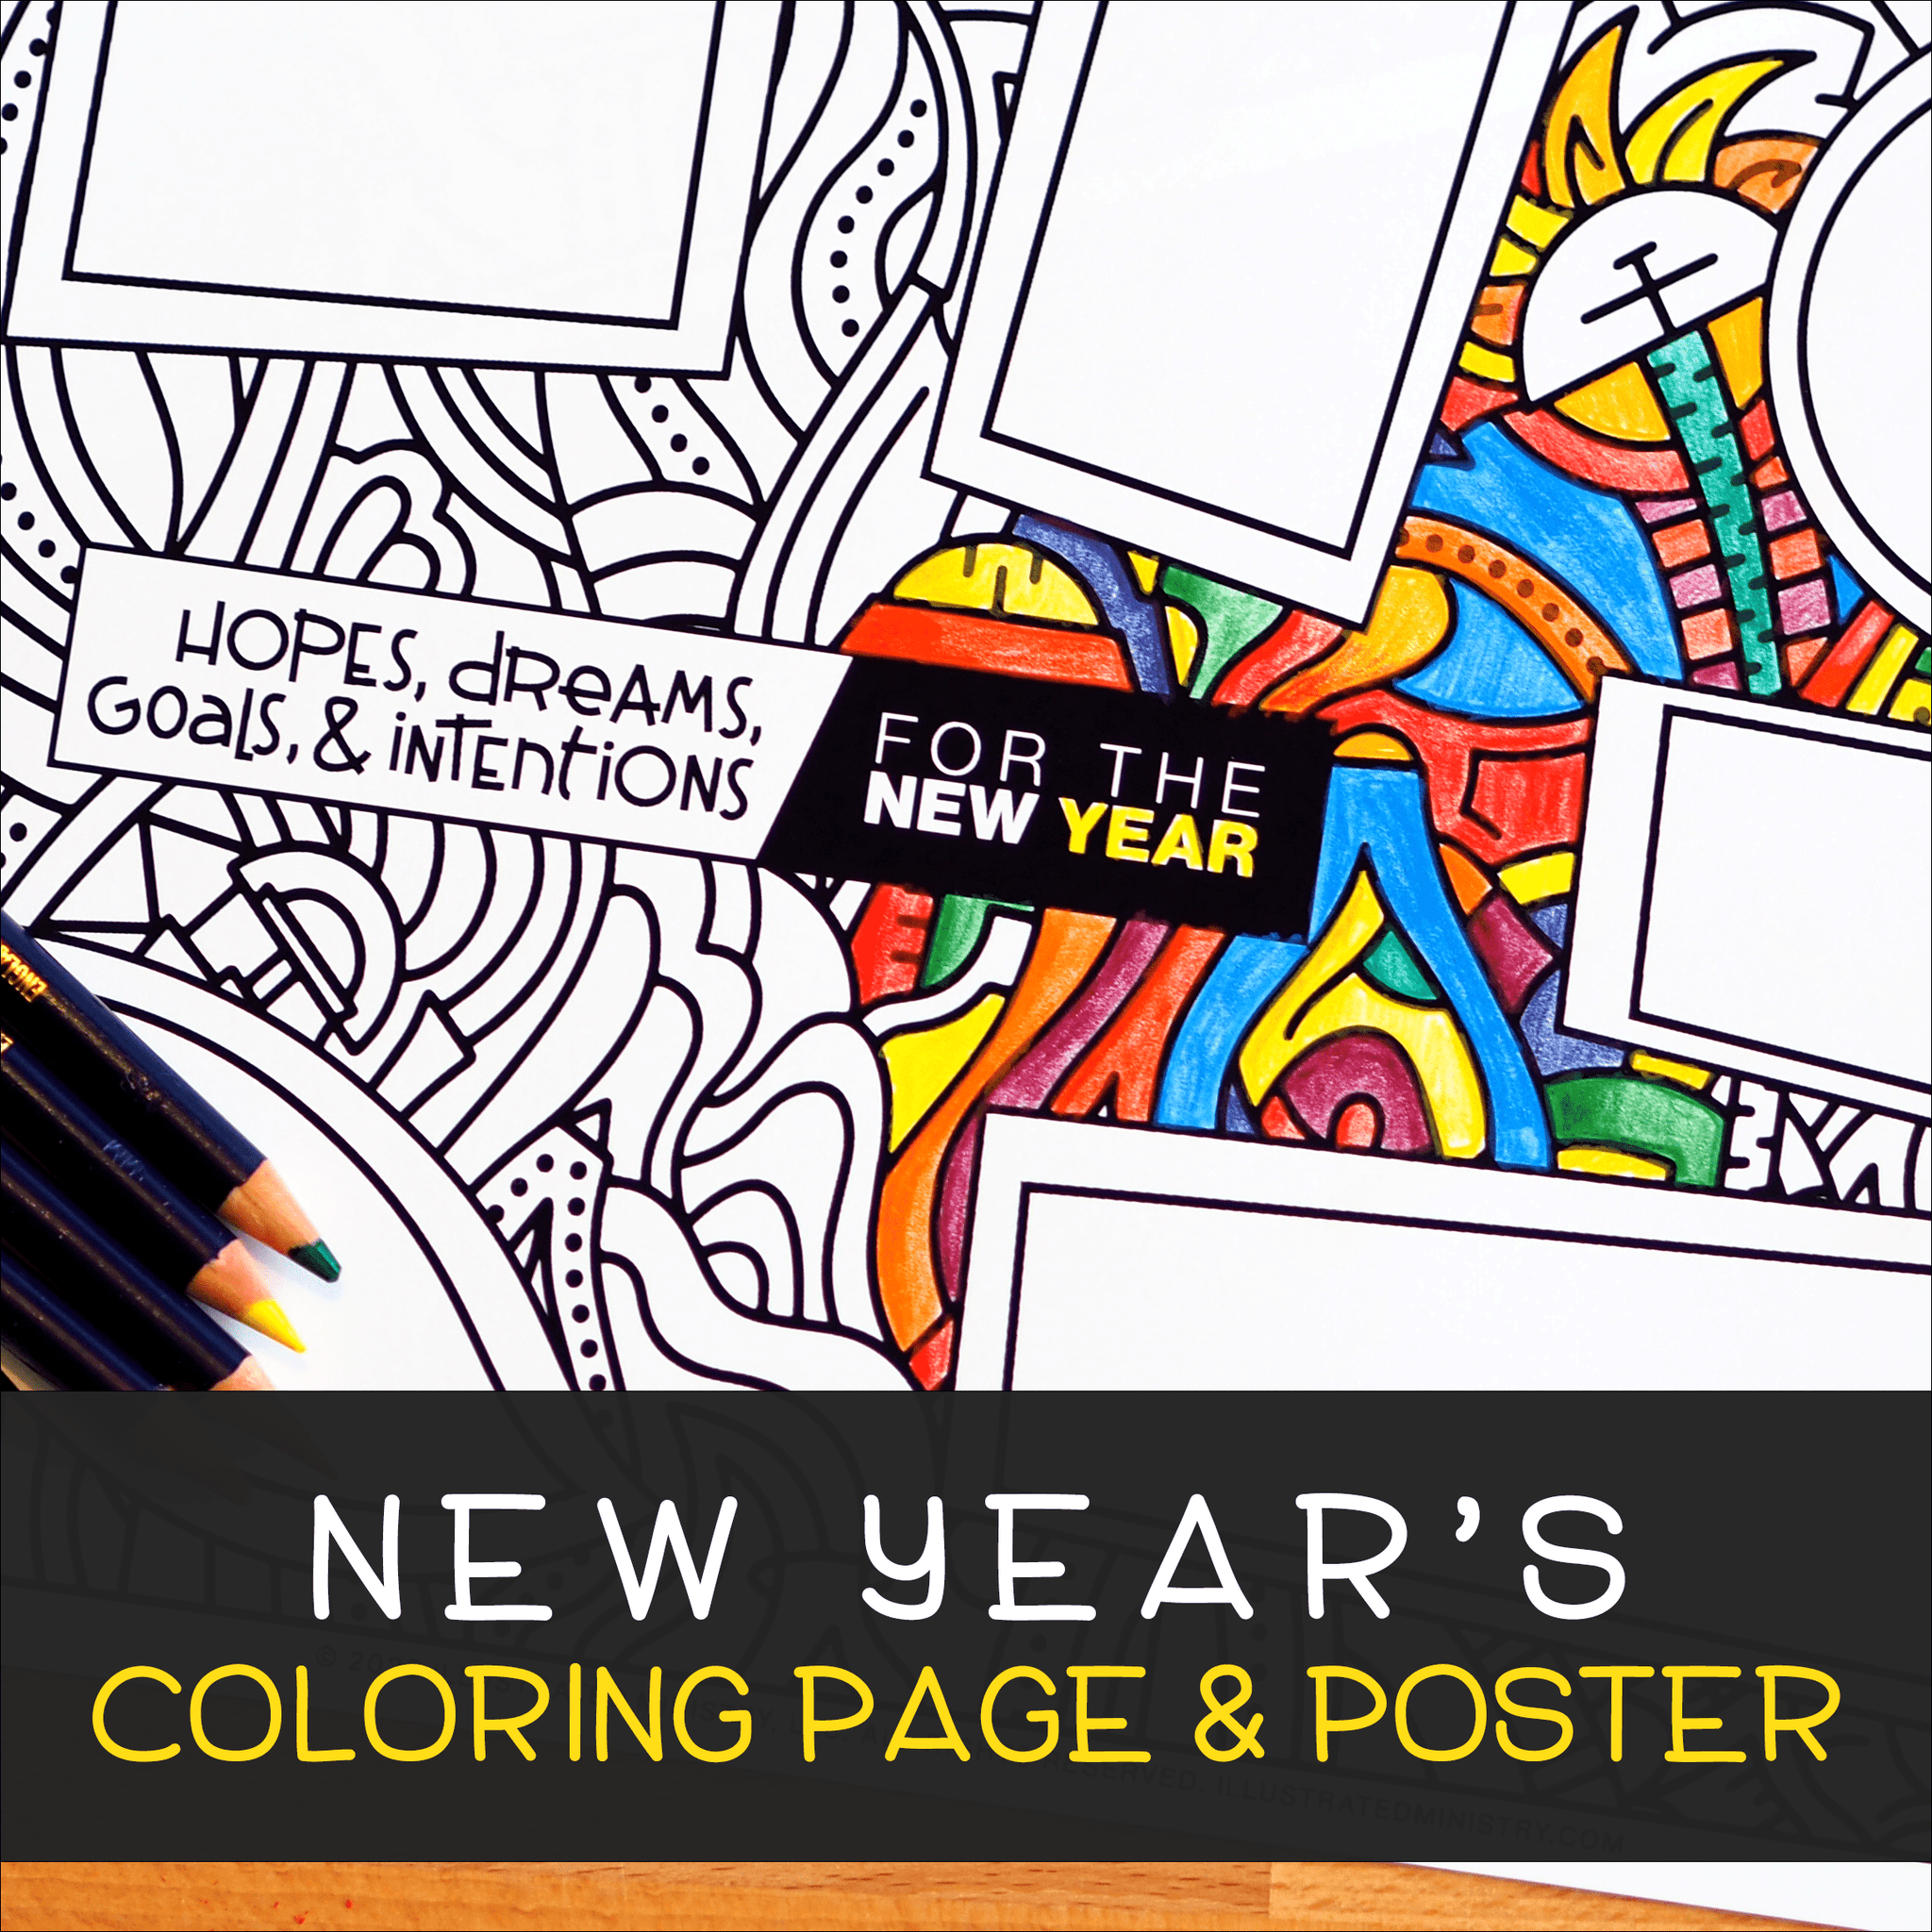 New Year's Coloring Page & Poster